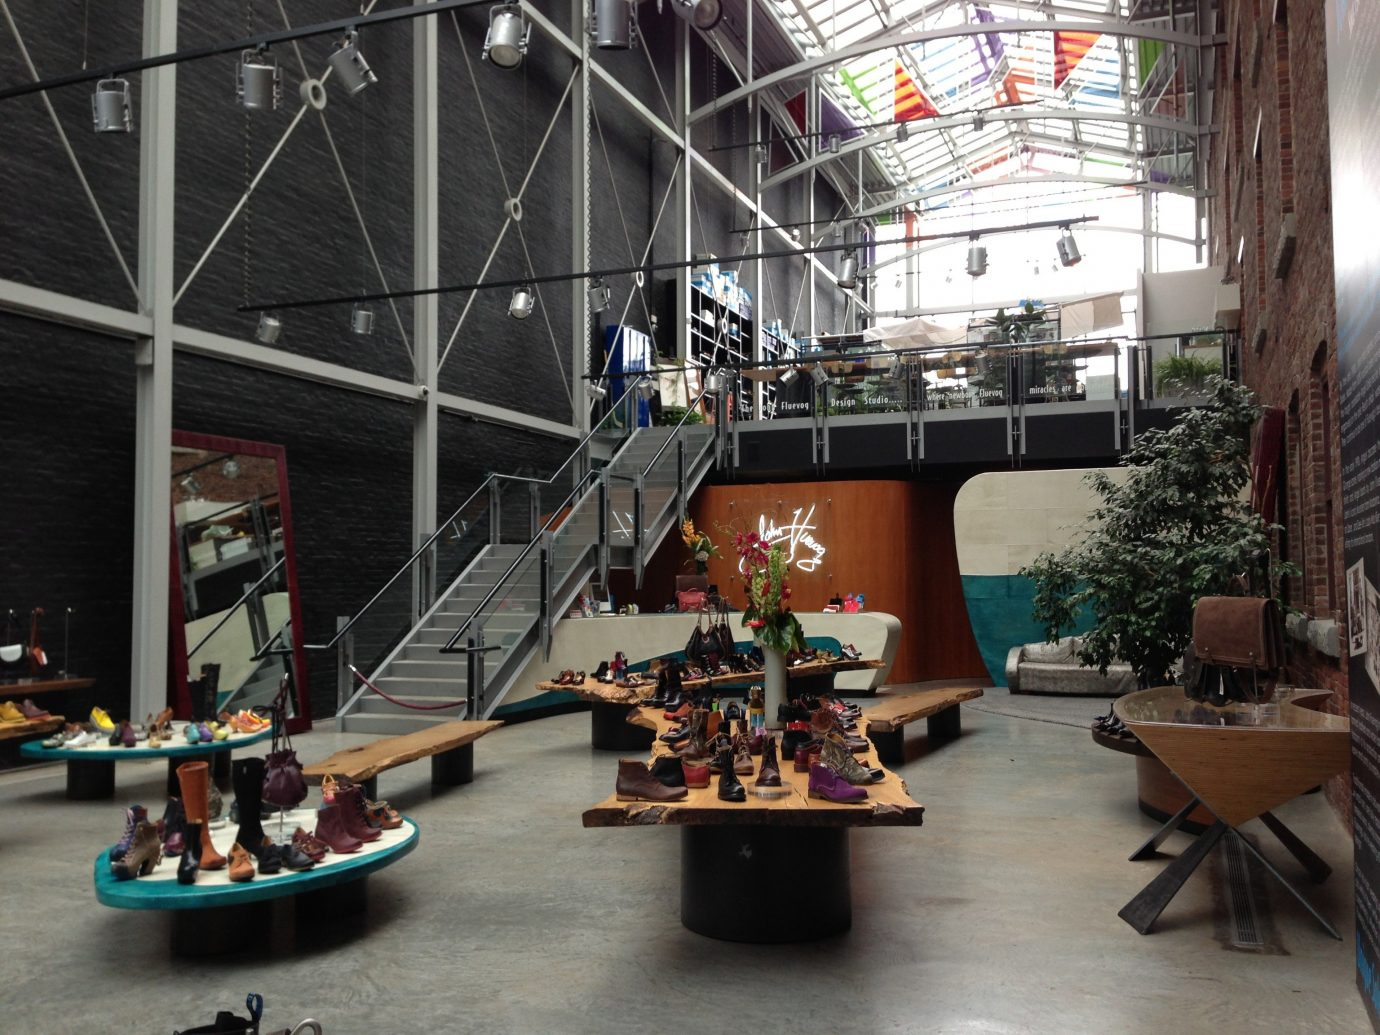 Offbeat Trip Ideas indoor tourist attraction building shopping mall